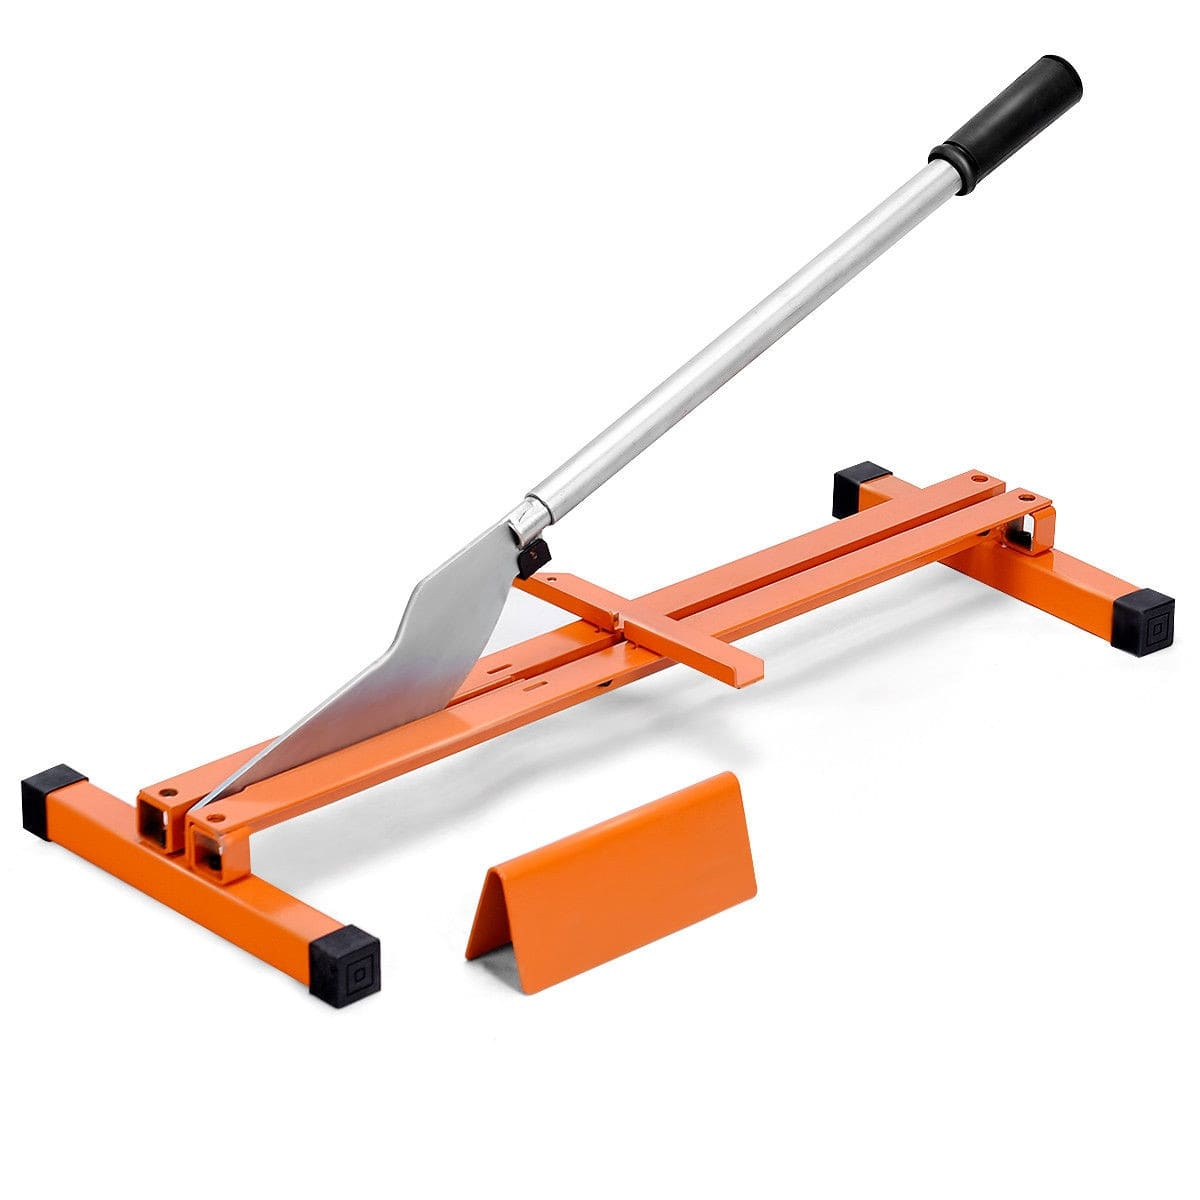 Costway Heavy Duty Laminate Flooring Cutter Hand Tool V-Support $39.95 + Free Shipping